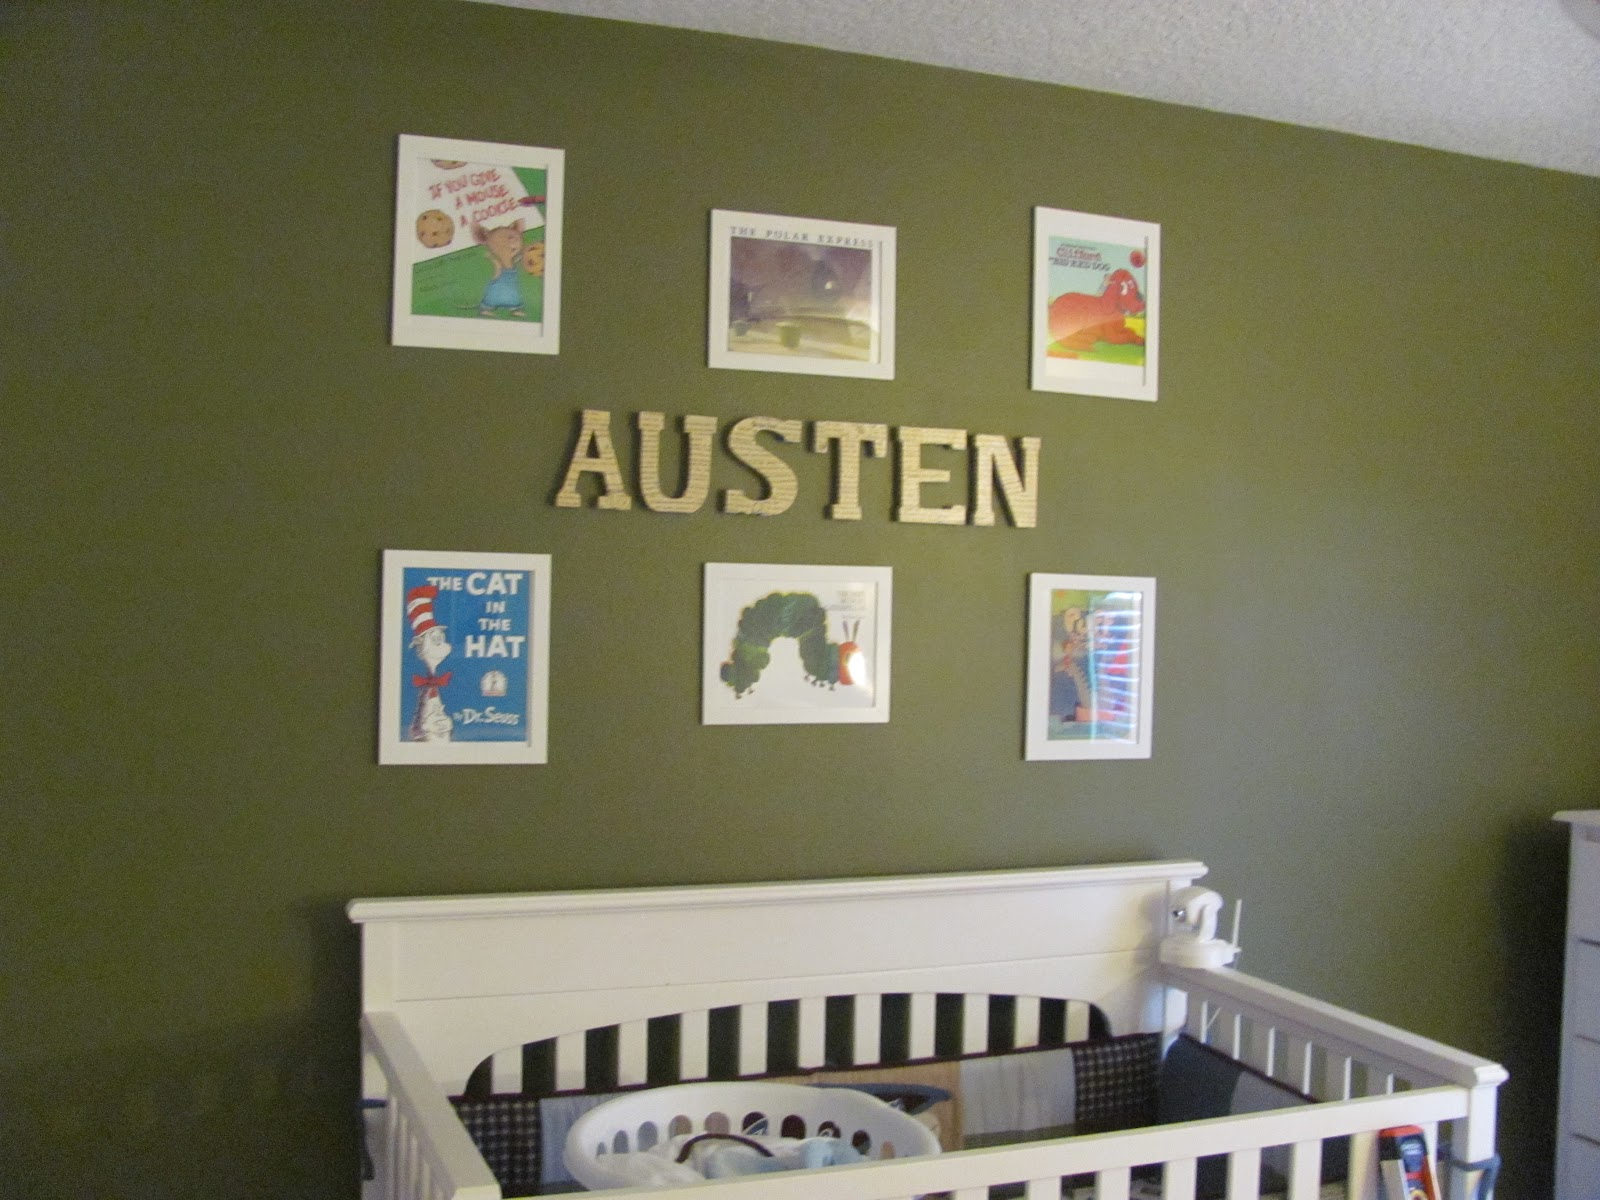 We Also Finished Austen S Nursery This Weekend Went With A Book Themed Room And Printed Off Covers